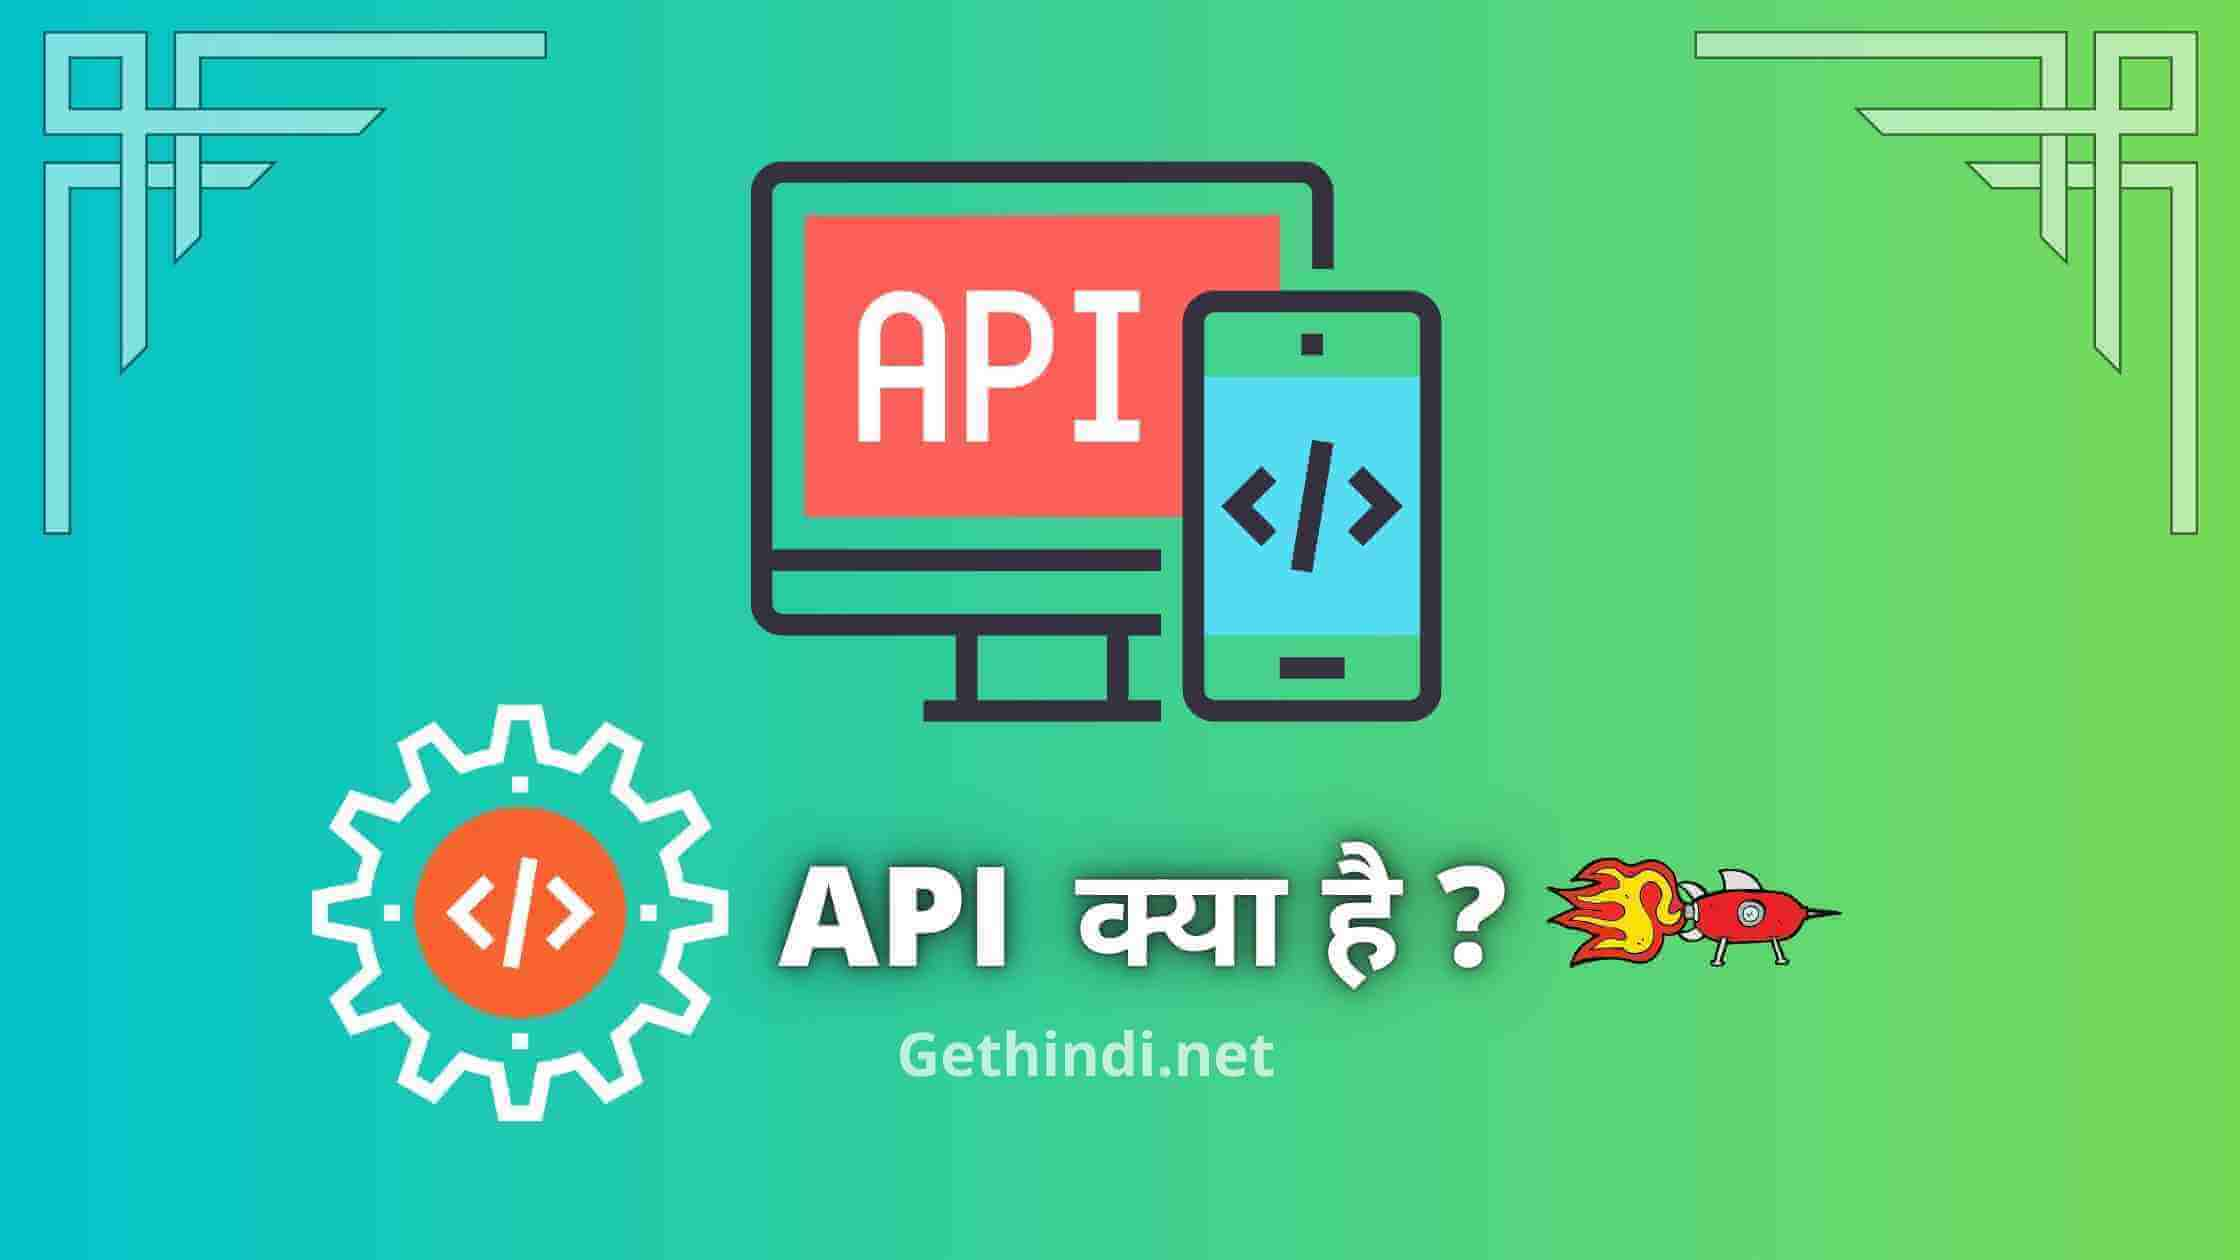 api kya hai in hindi